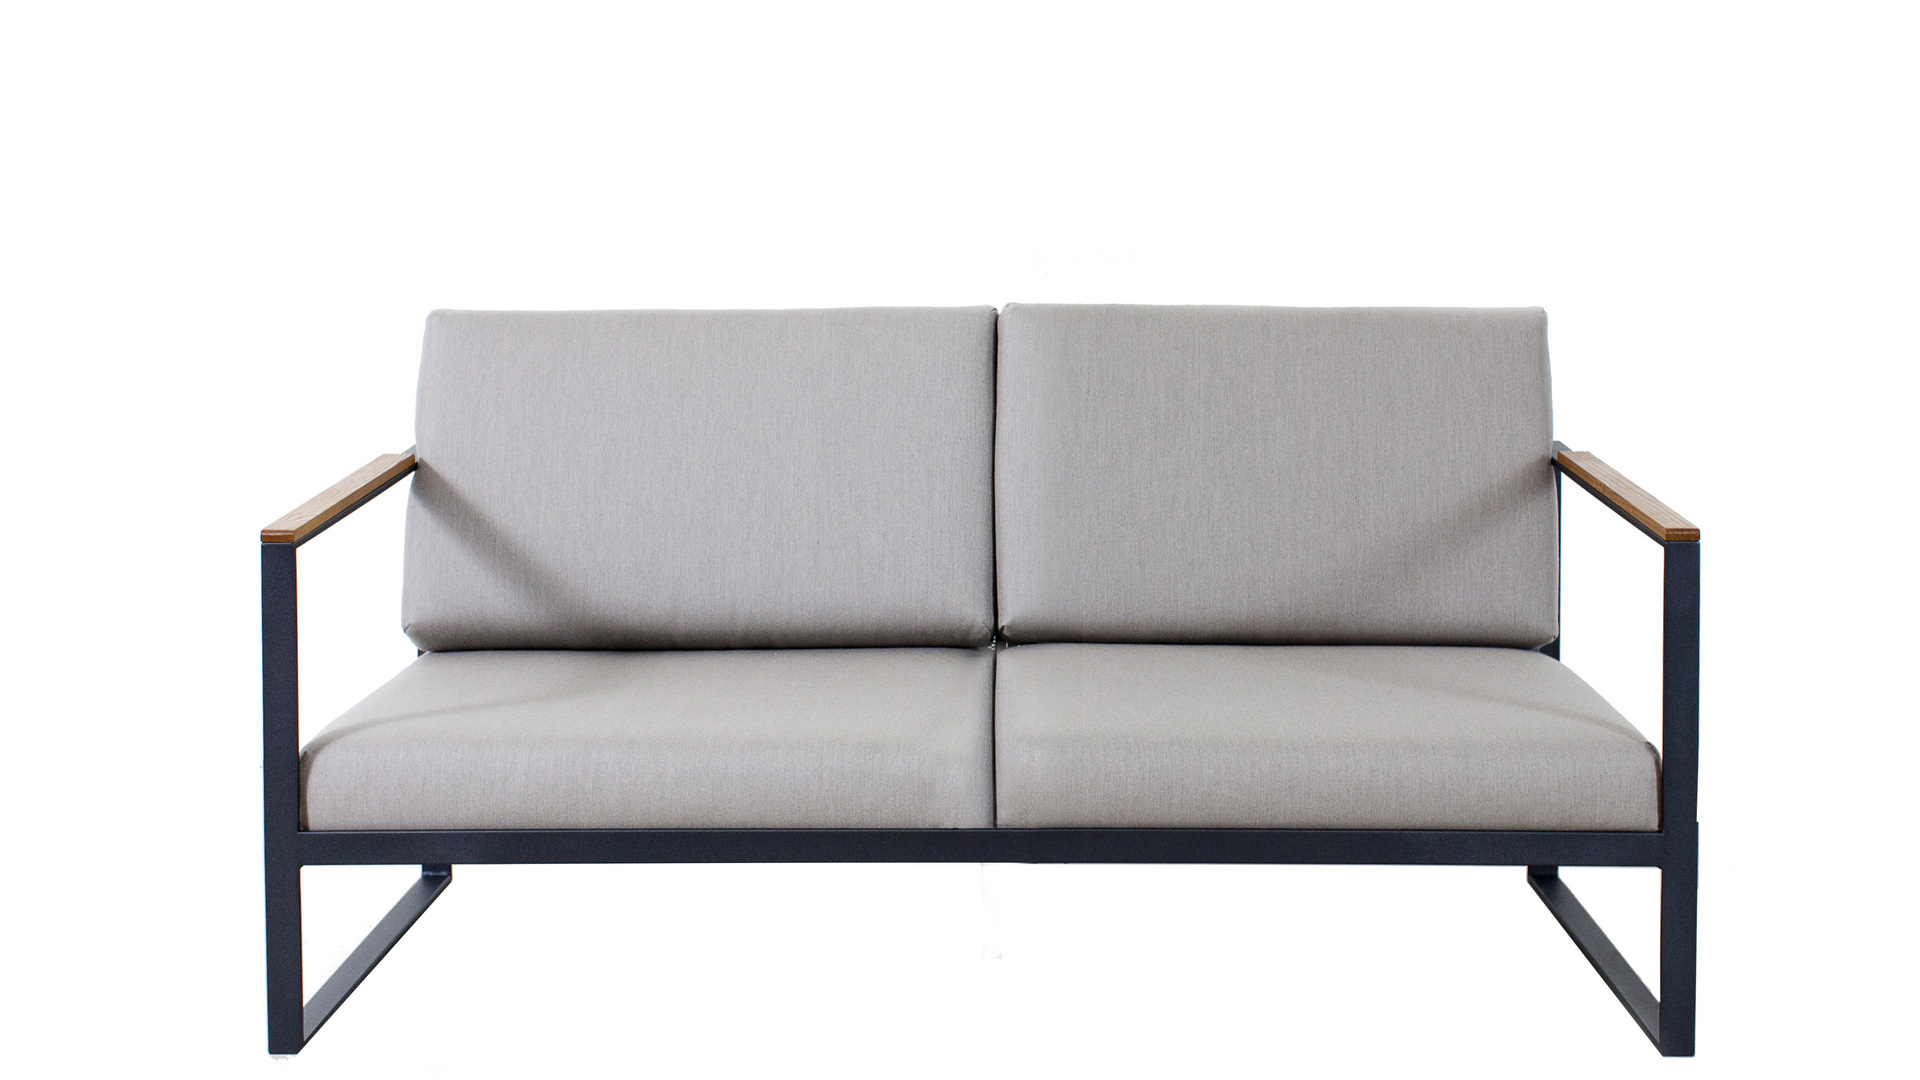 Urban Sofa Barneveld Röshults Garden Easy Sofa 2 Seater